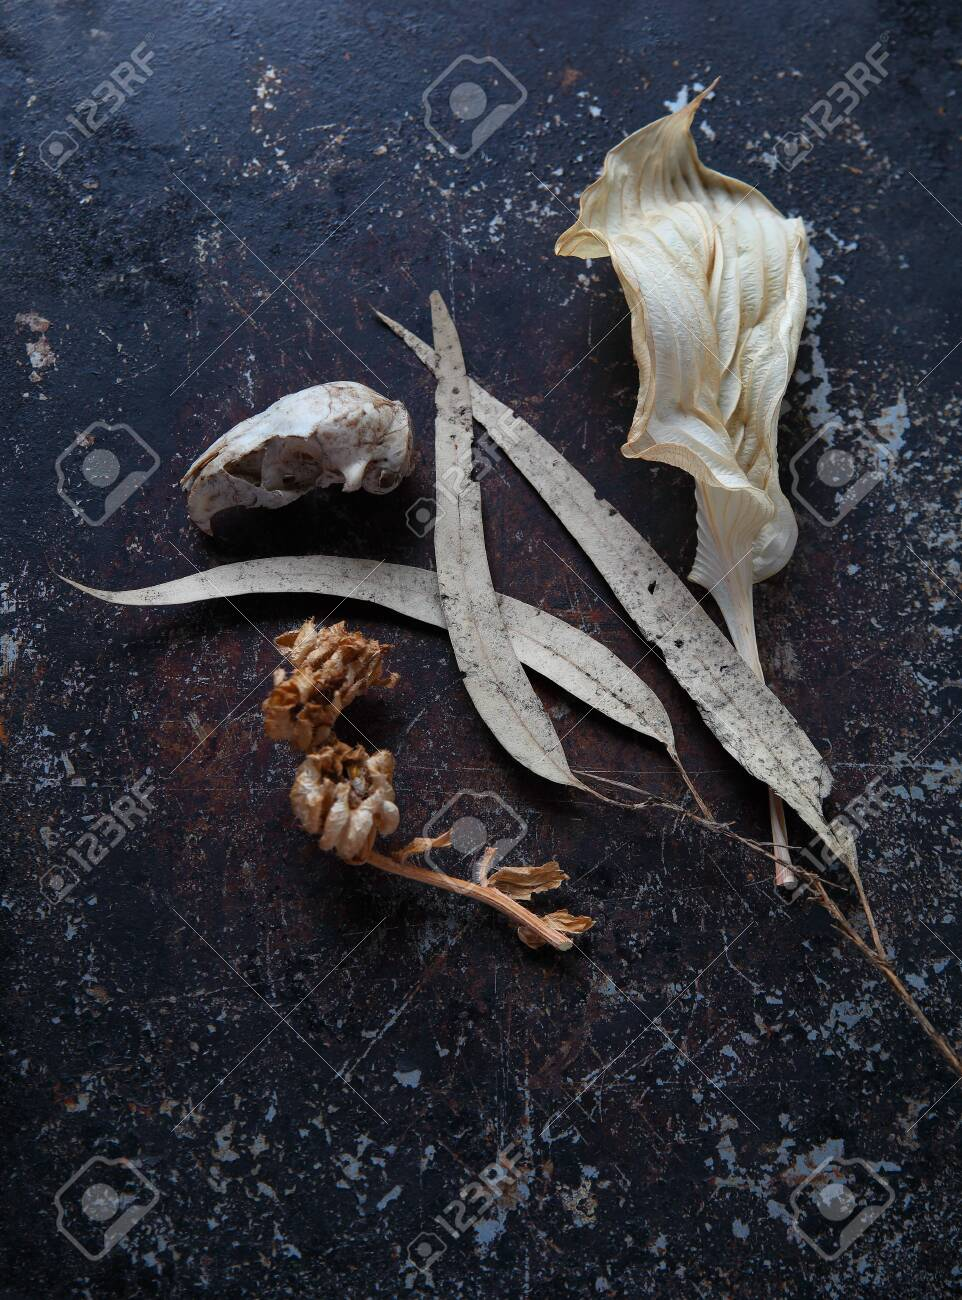 Overhead view of dead leaves, small animal skull and seed pods on a textured metal surface with copy space - 141338761